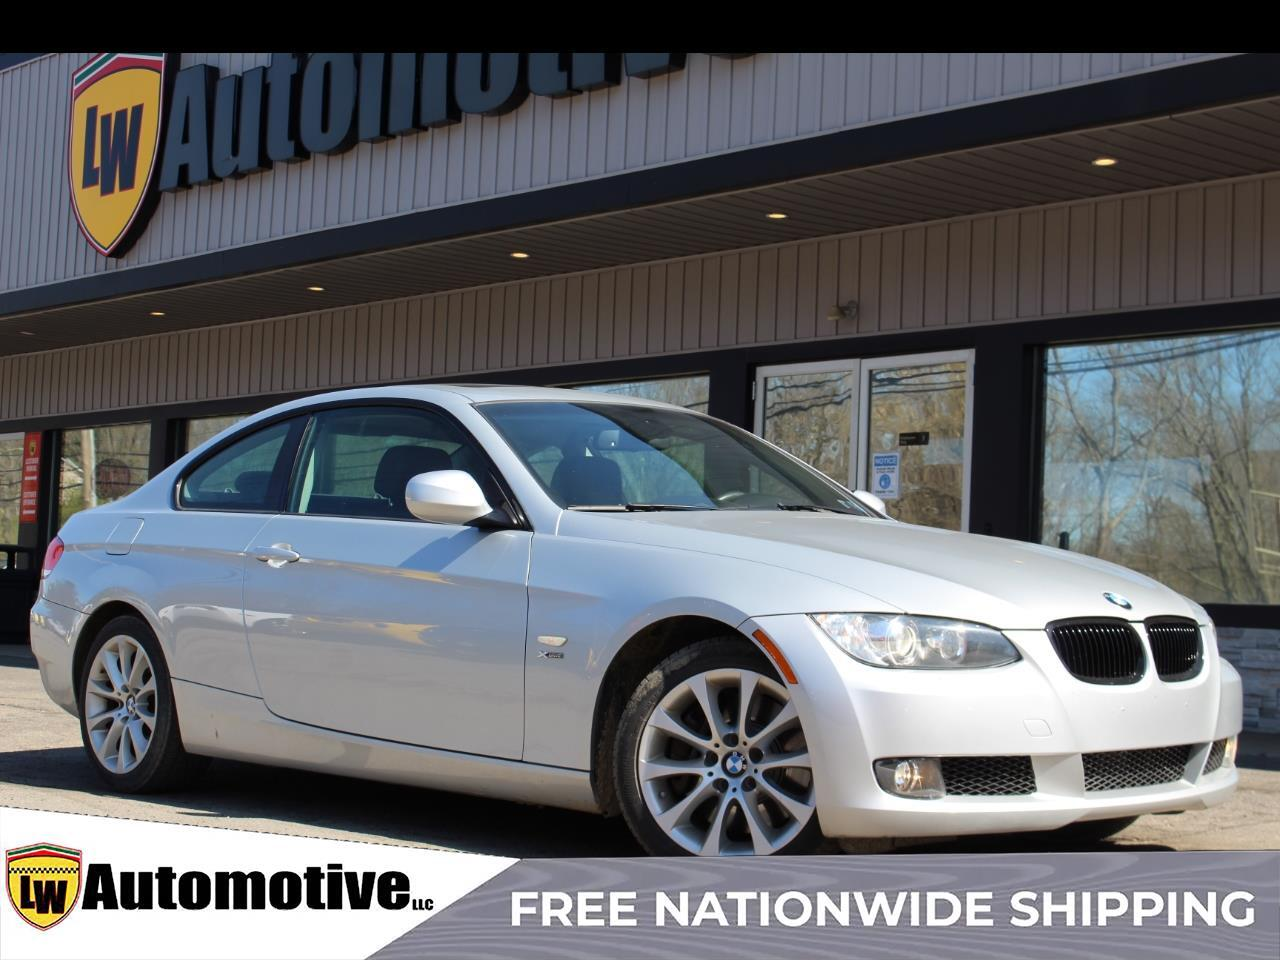 2010 BMW 3 Series 2dr Cpe 335i xDrive AWD